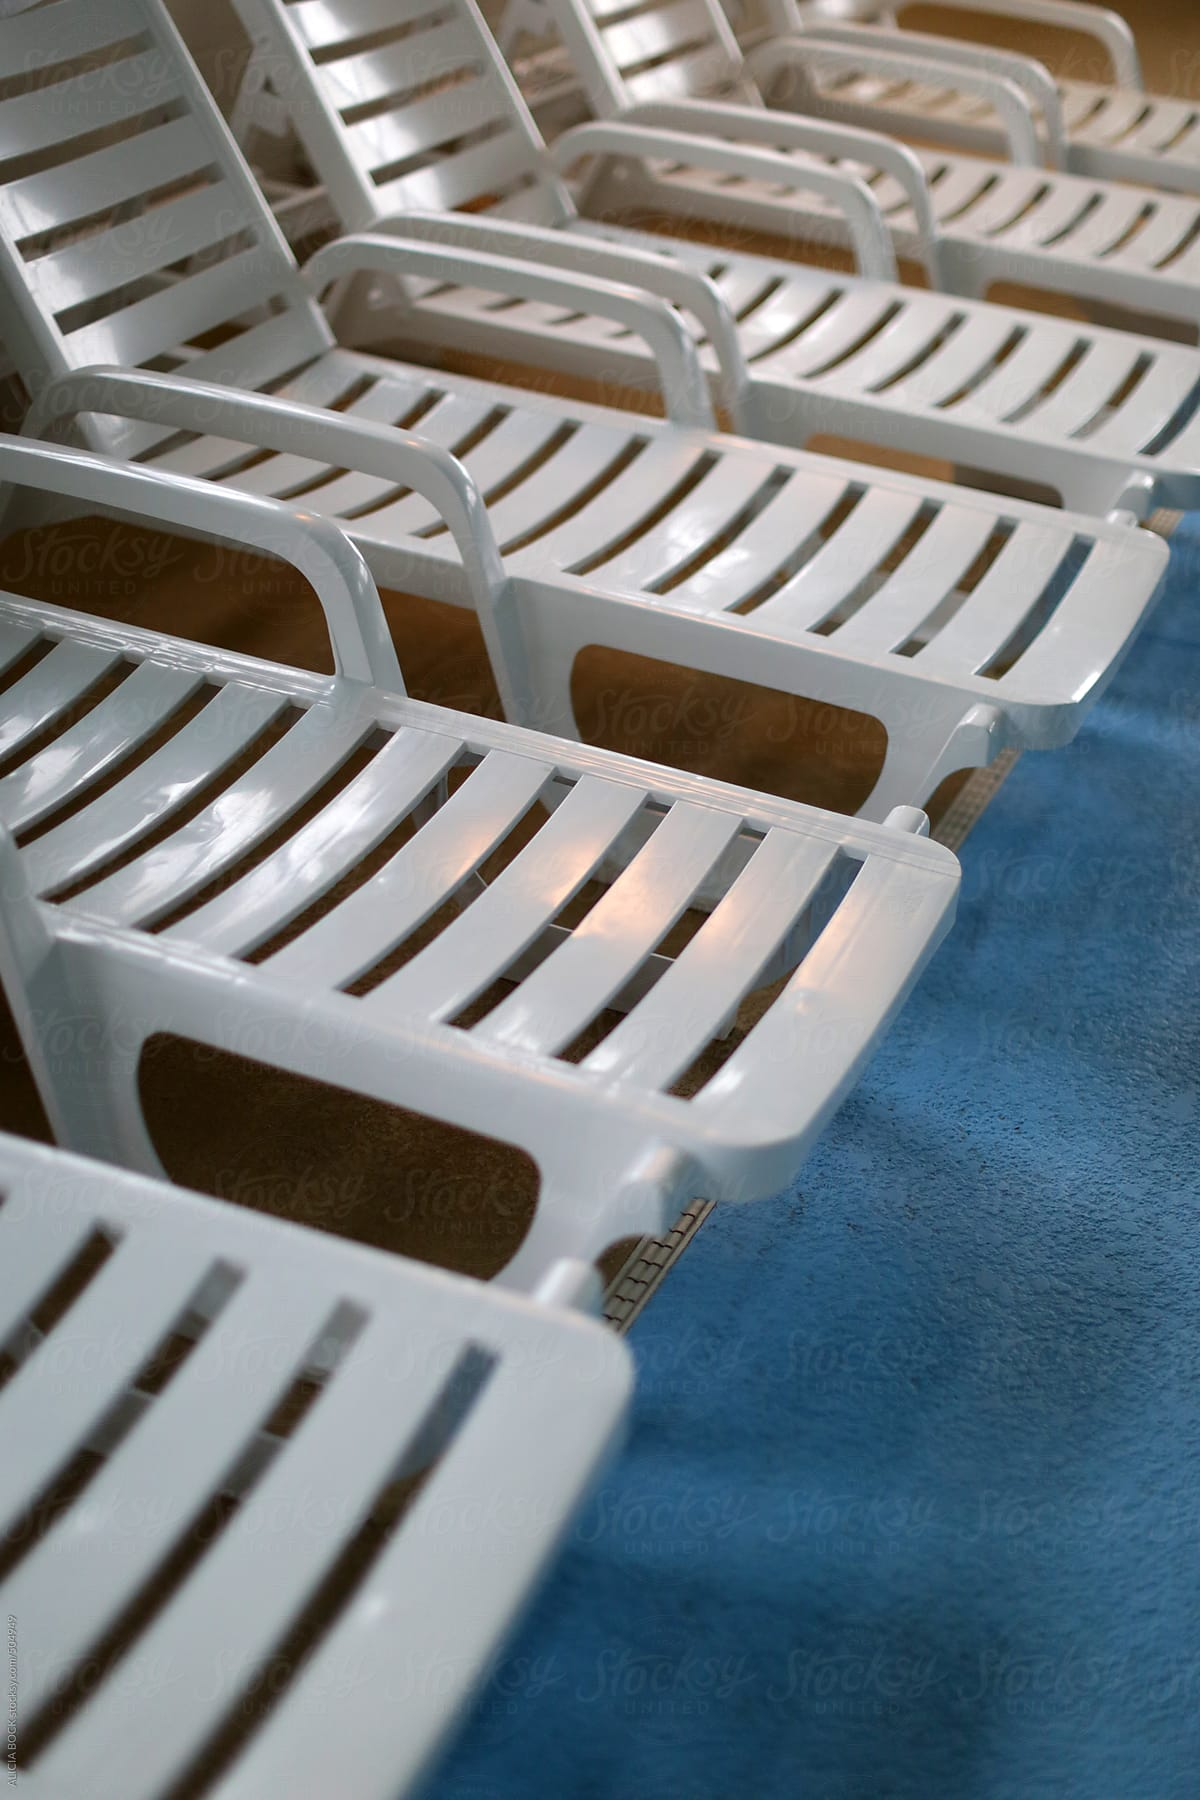 Pool Deck Chairs Stock Photo A Row Of Lounge Chairs In A Row On A Swimming Pool Deck